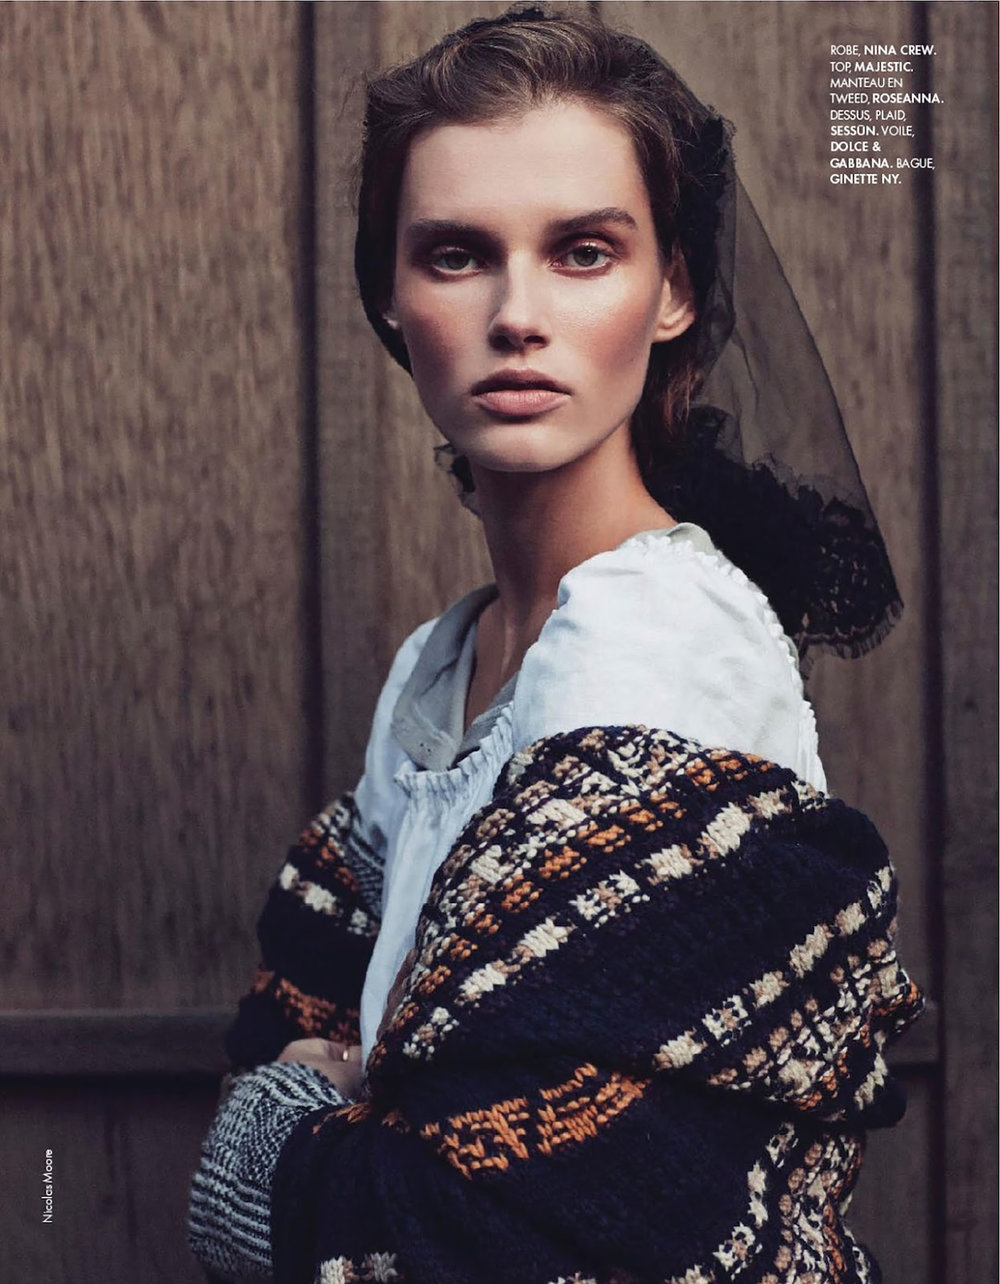 elle_fr_3550_20140110 (dragged) 17.jpg